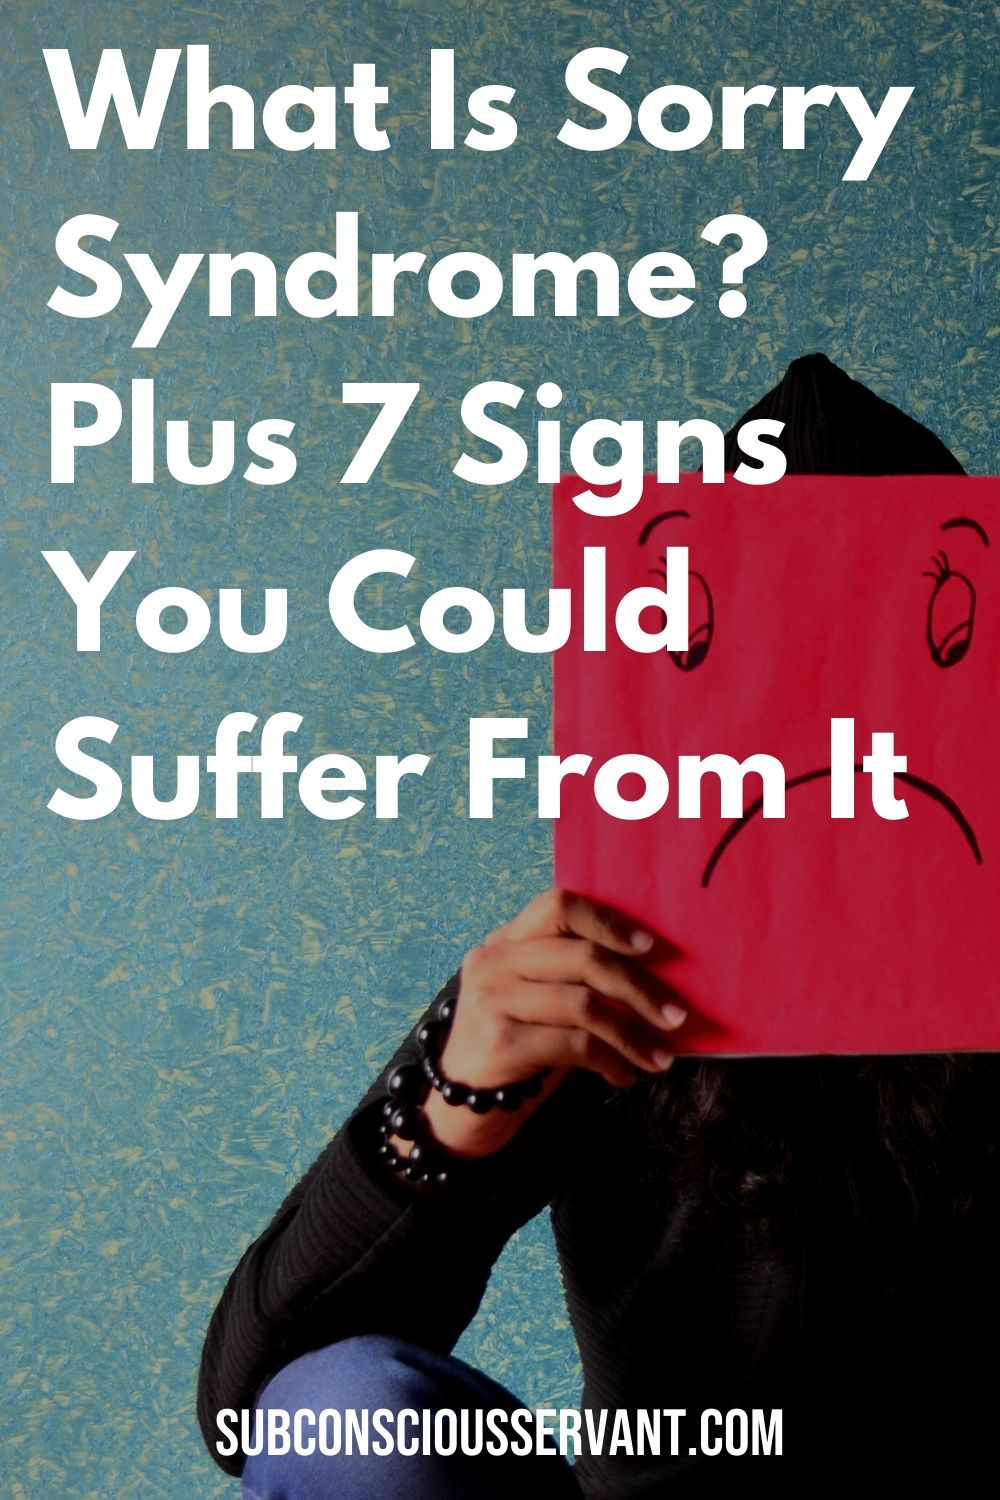 What Is Sorry Syndrome? Plus 7 Signs You May Have It